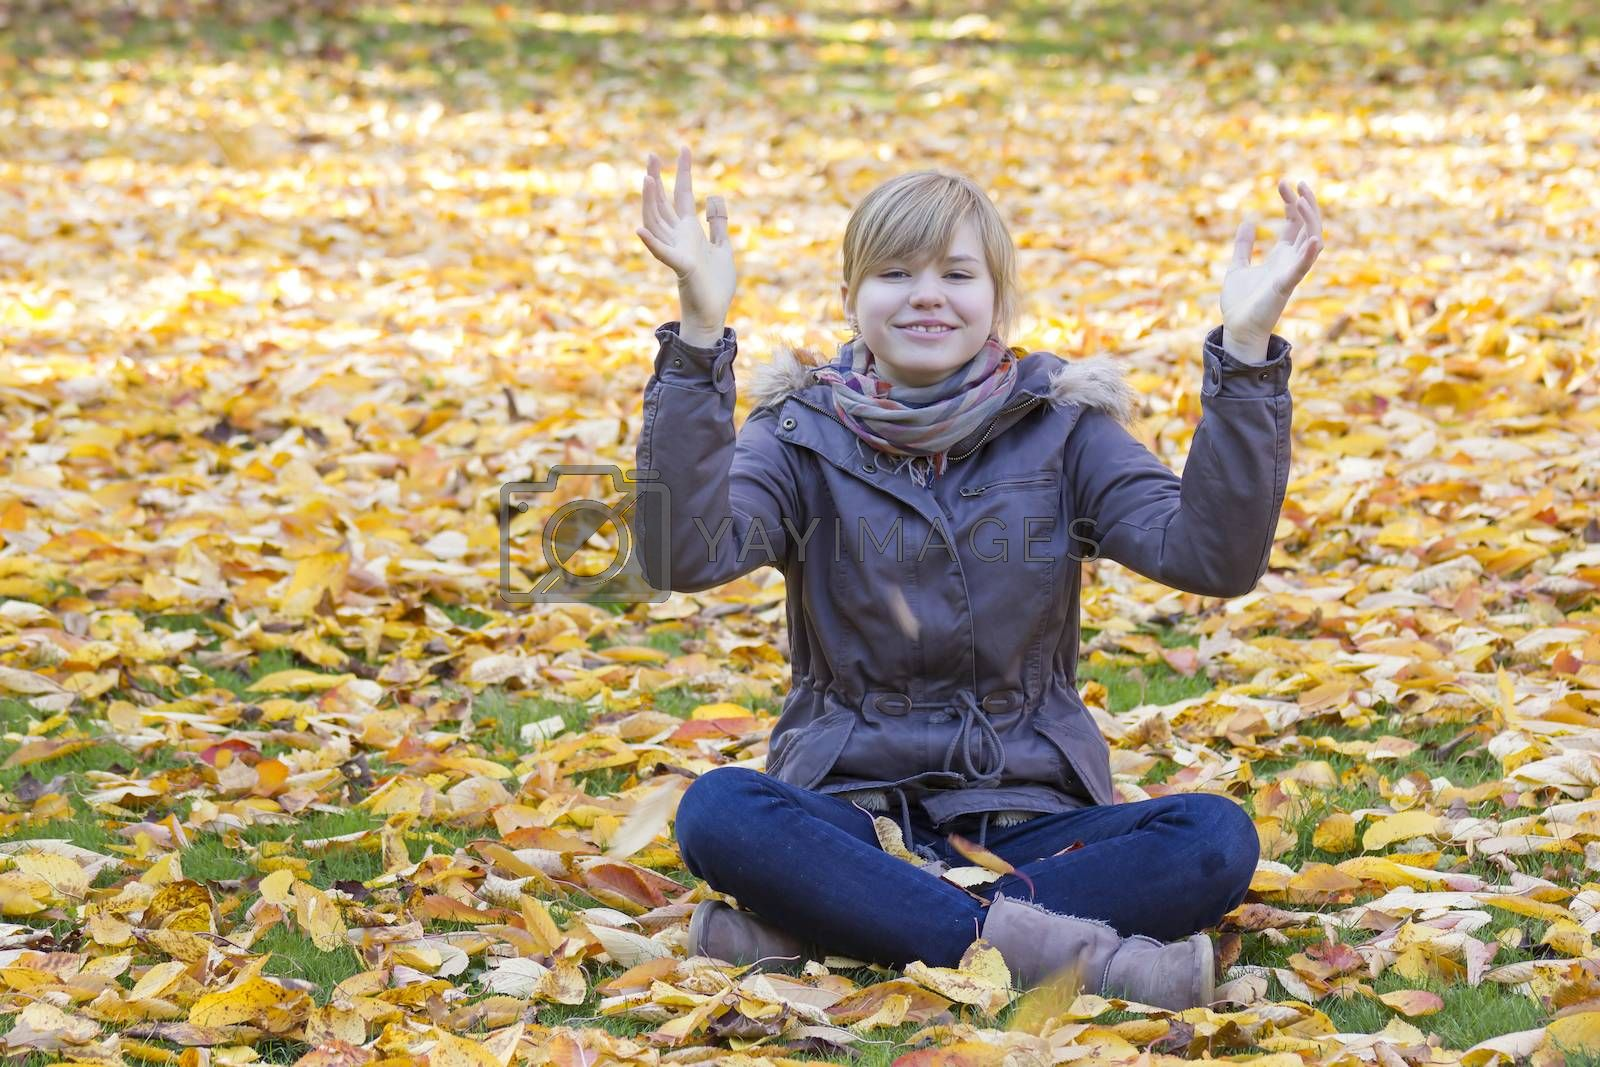 smiling girl sitting on fallen leaves in autumn park and rising  by miradrozdowski